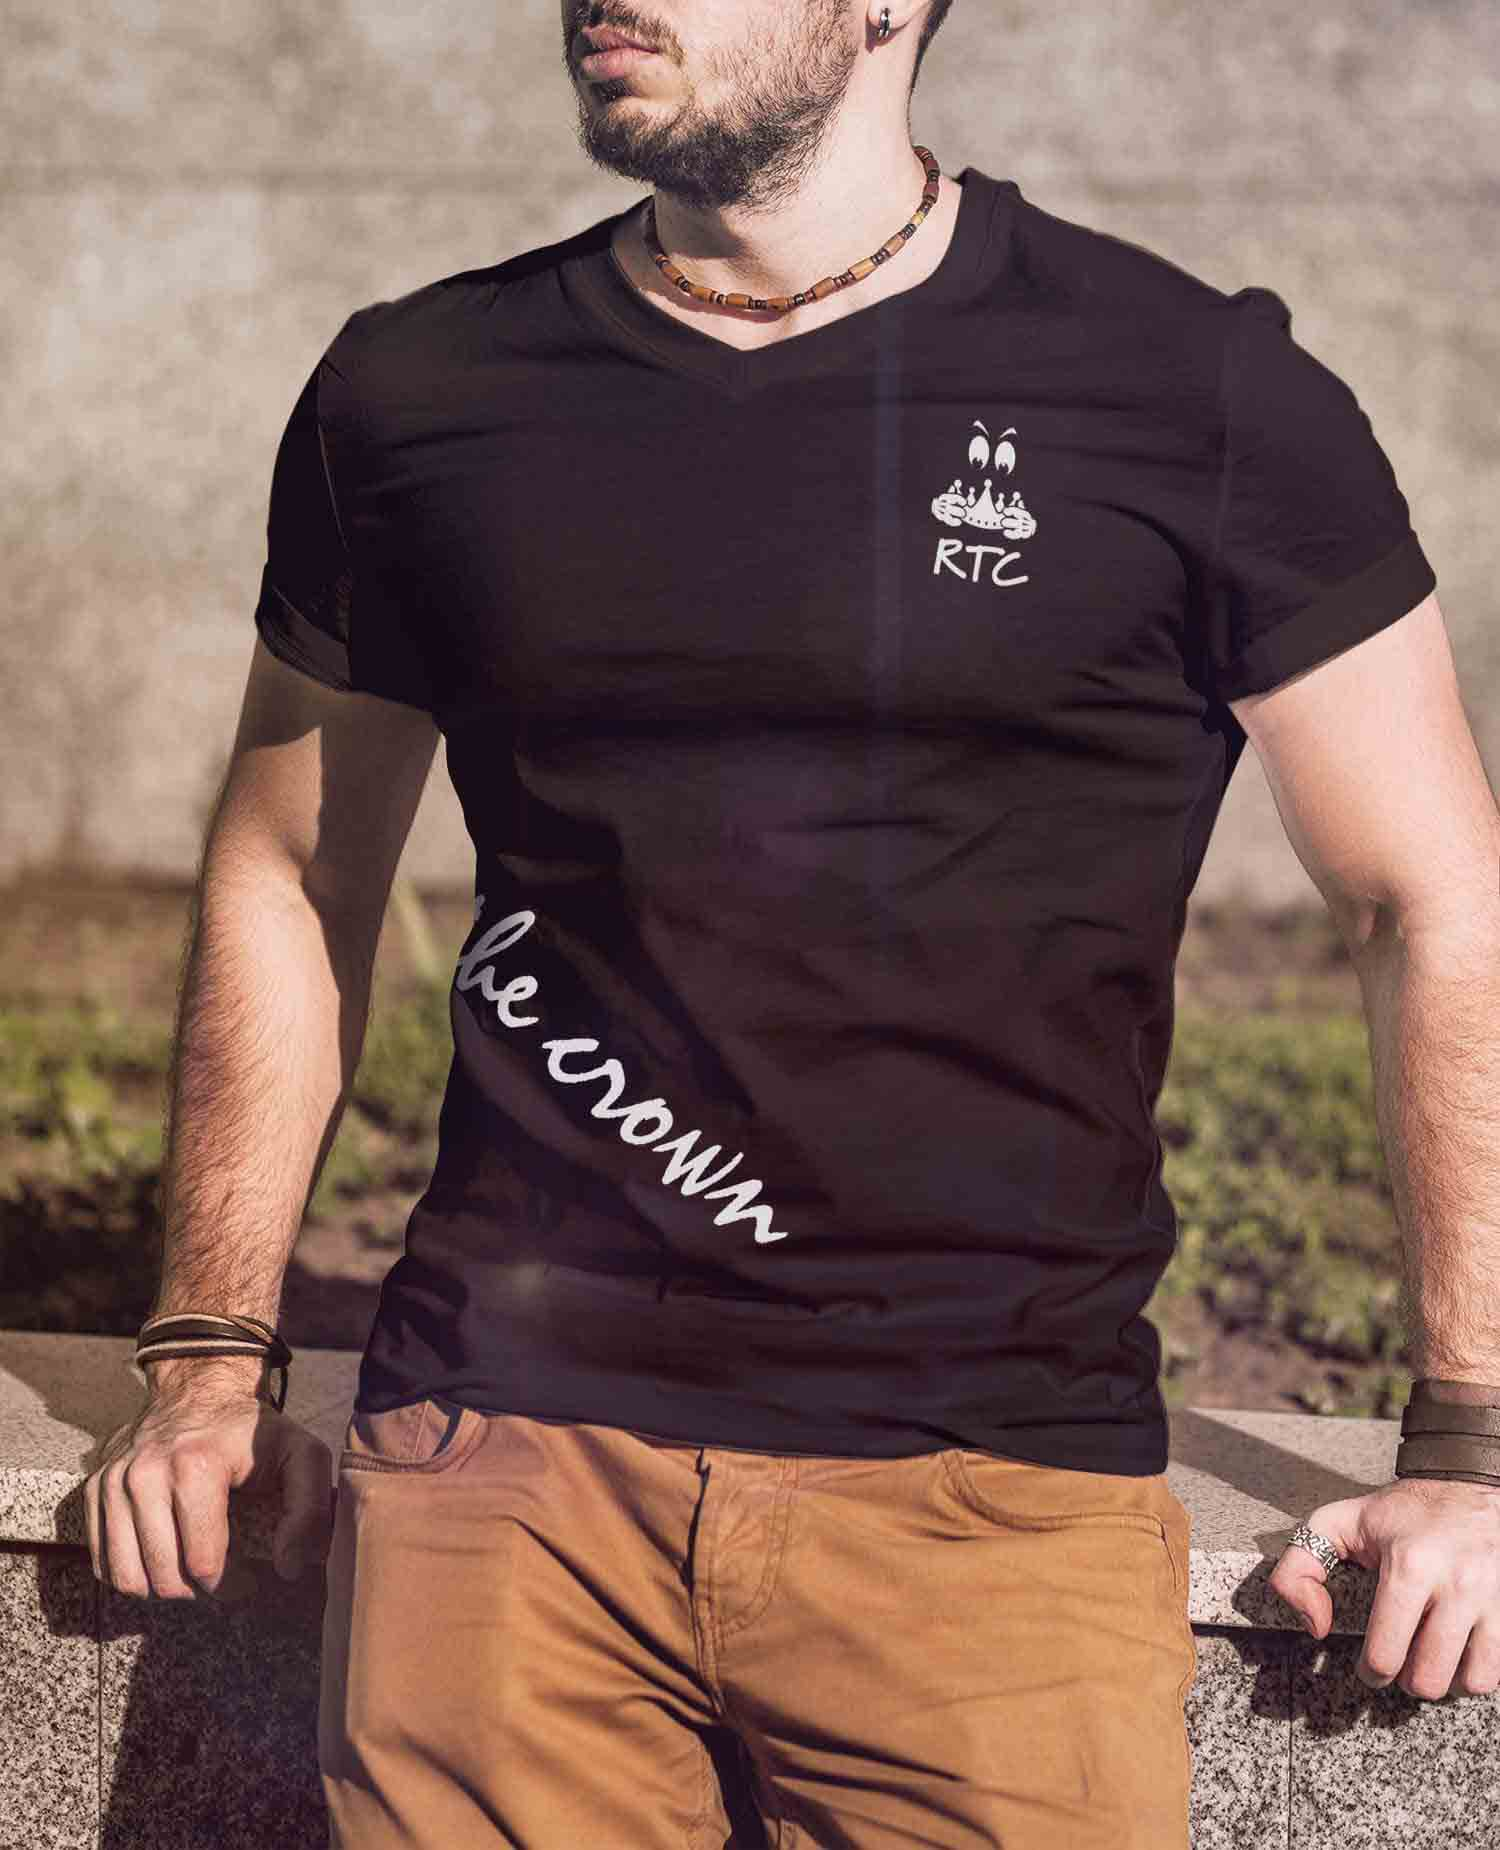 Robbing The Crown T-shirt